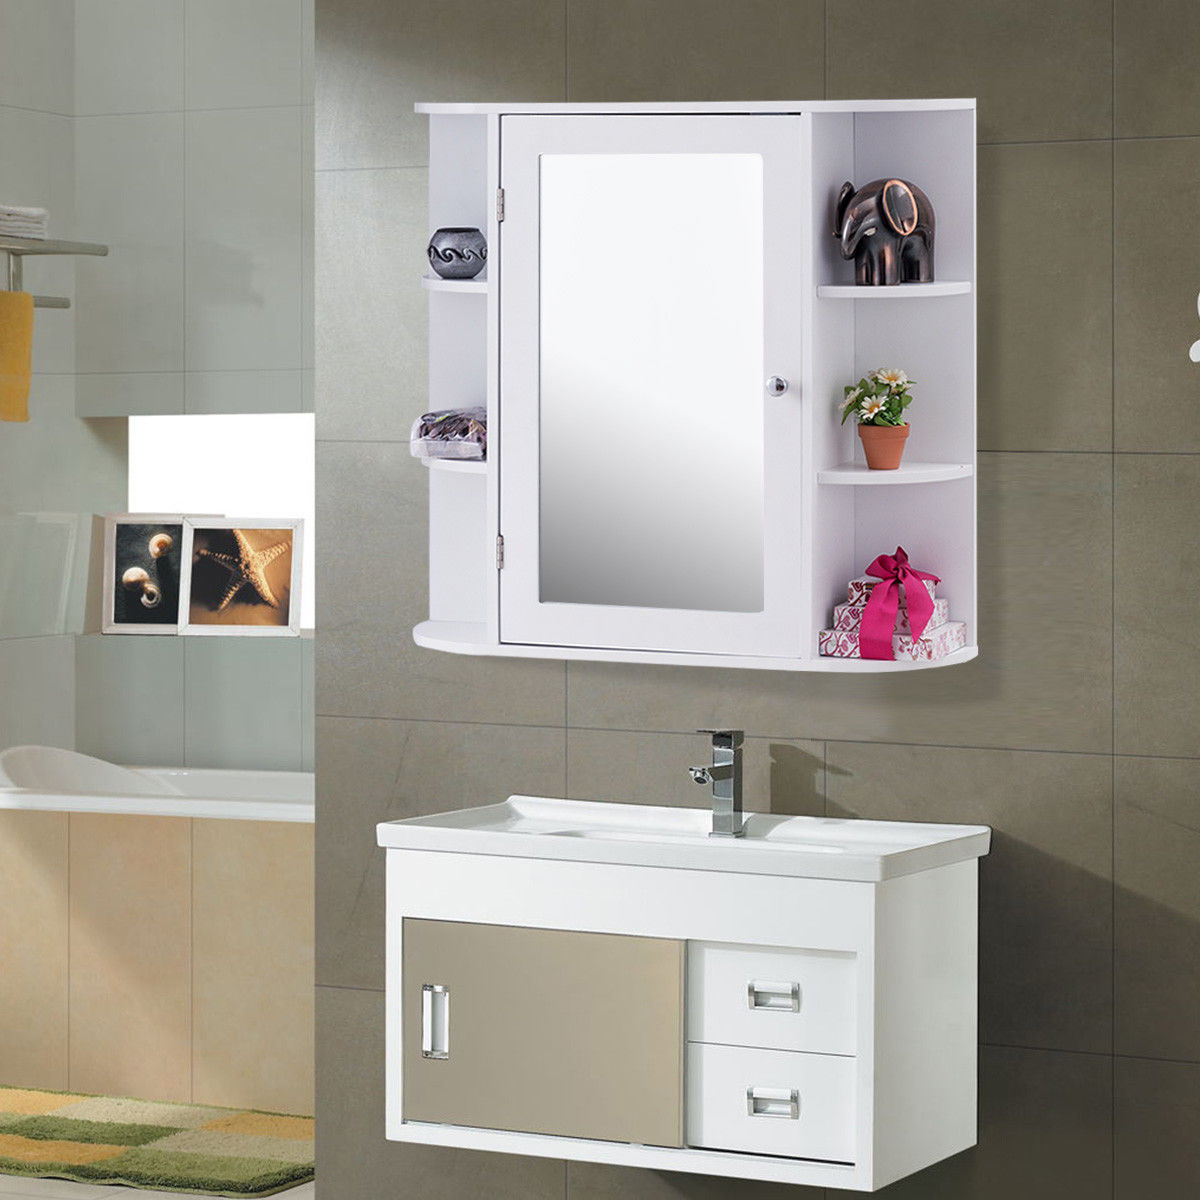 Us 12599 Giantex Multipurpose Mount Wall Surface Bathroom Storage Cabinet With Mirror White Modern Wood Bathroom Furniture Hw56729 On regarding size 1200 X 1200